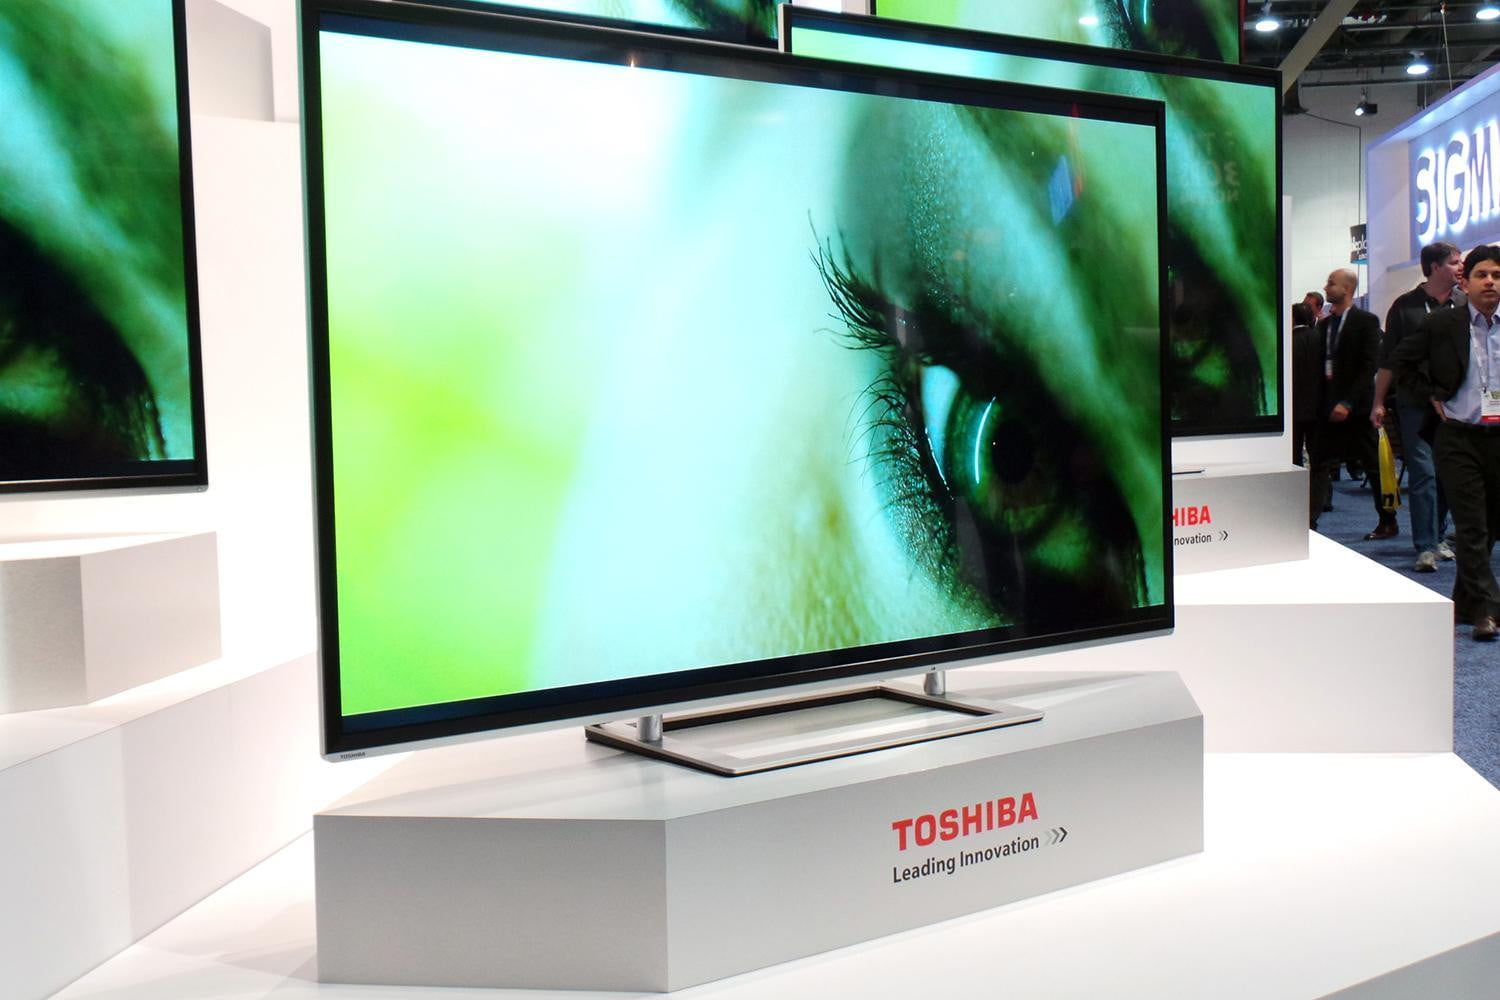 Toshiba is calling it quits in the US TV market | Digital Trends